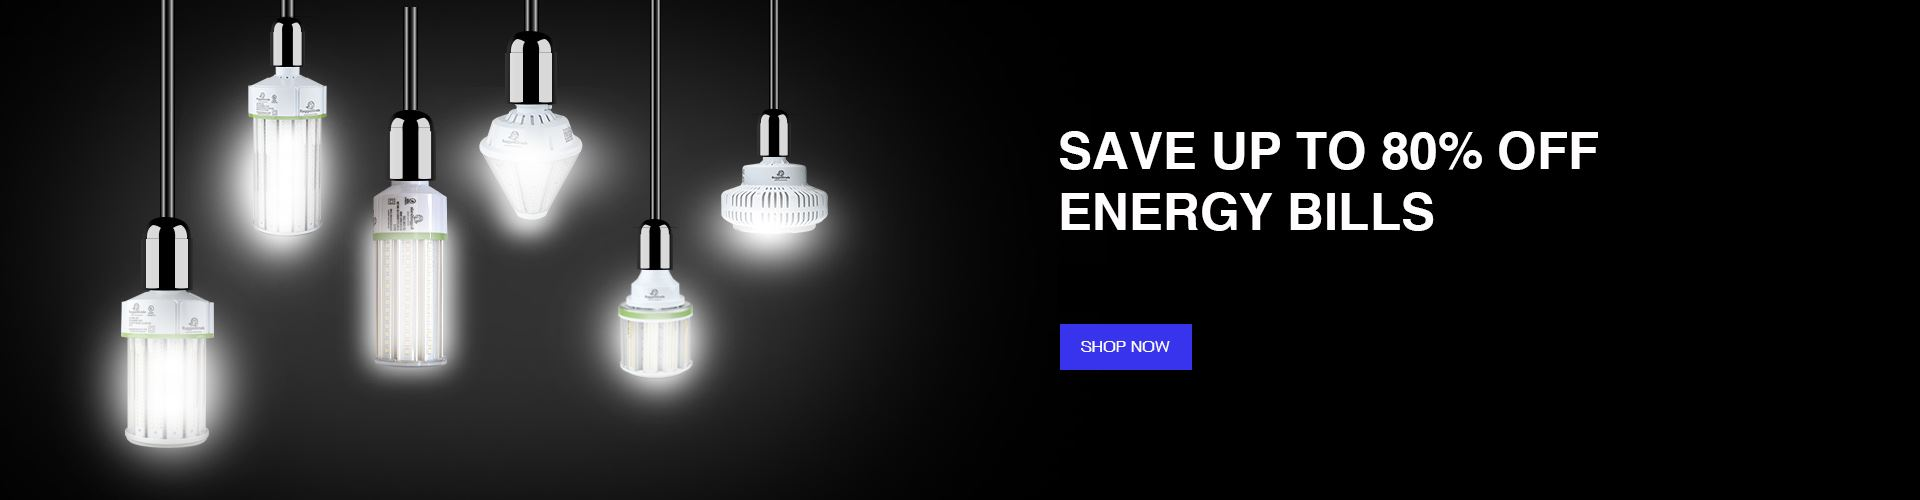 Welcome to LED Light Expert - The Lighting Pro's